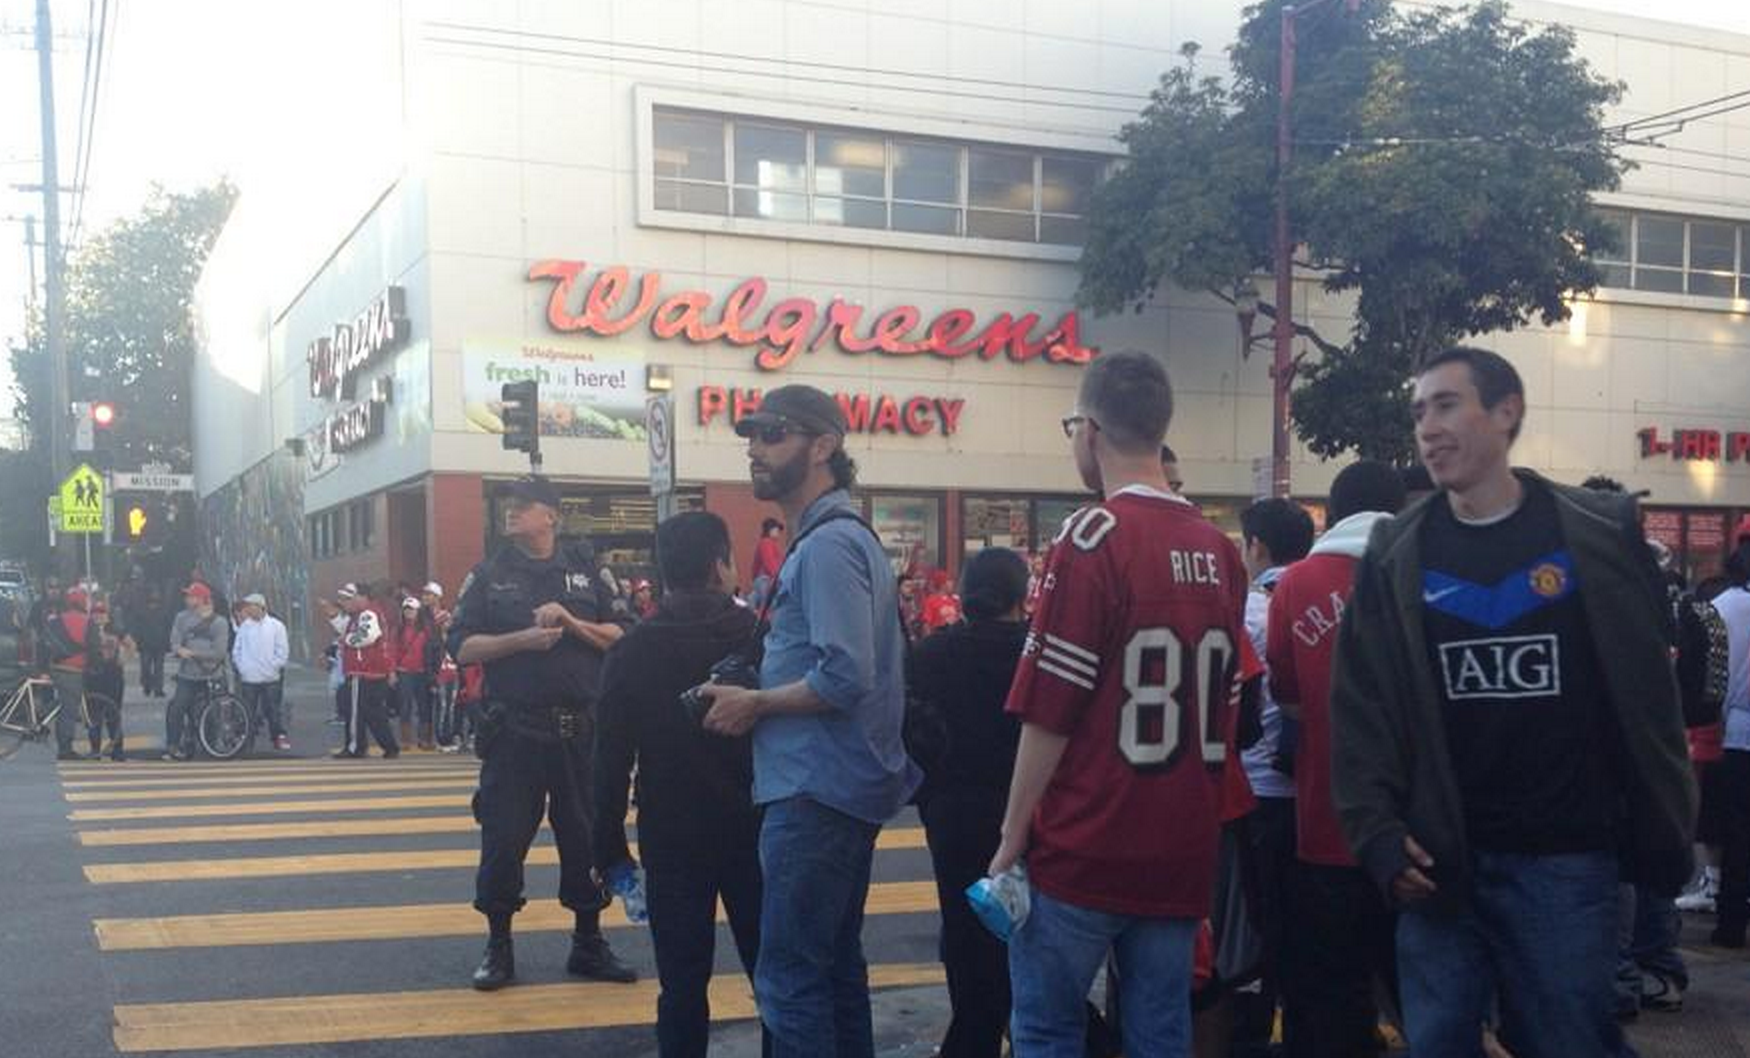 At 23rd and Mission streets after the 49ers's win against the Falcons. Photo by Rigoberto Hernandez.